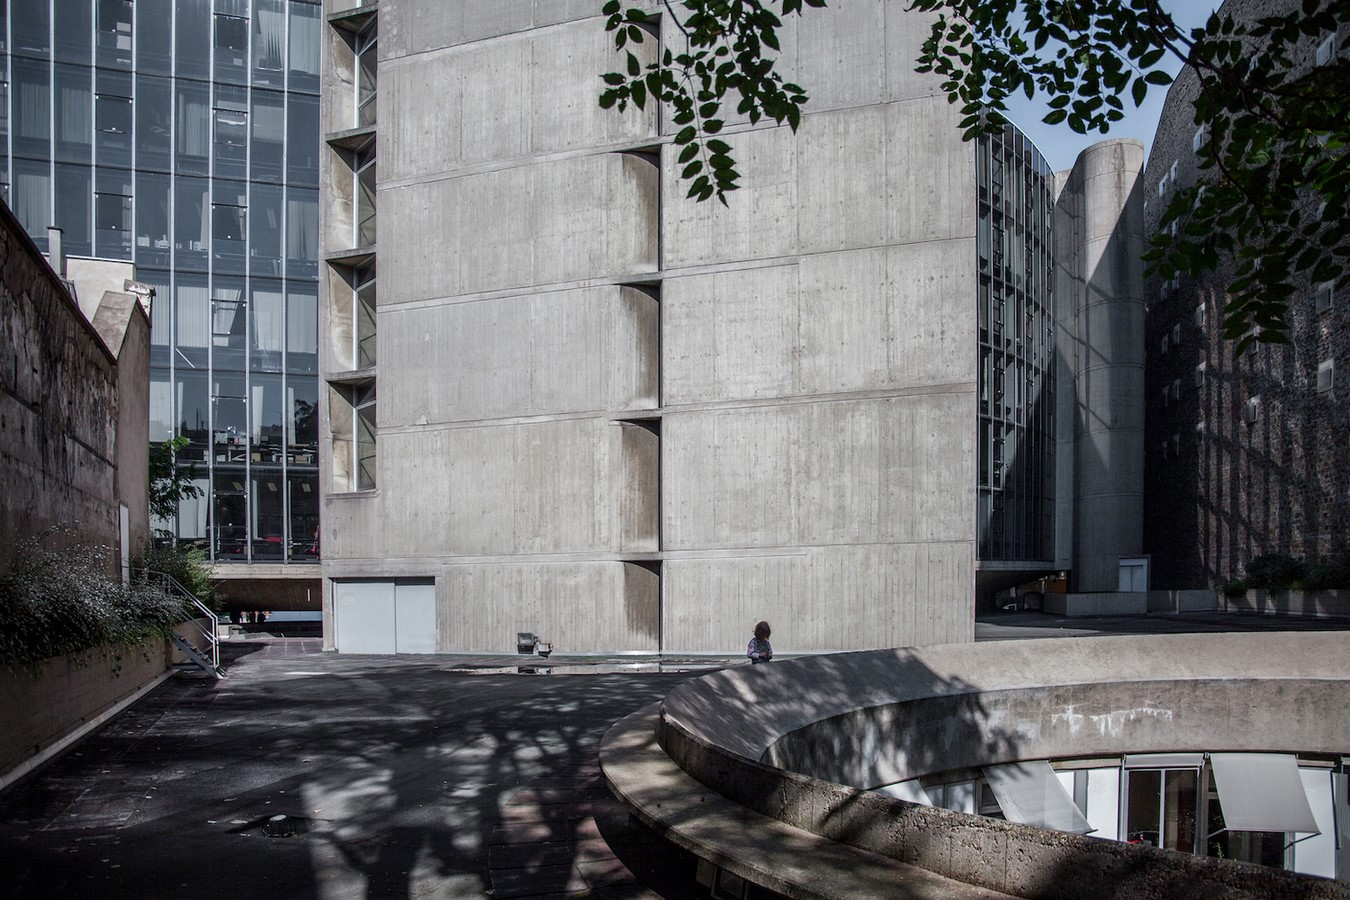 French Communist Party Headquarters by Oscar Niemeyer: Along with the City - Sheet12